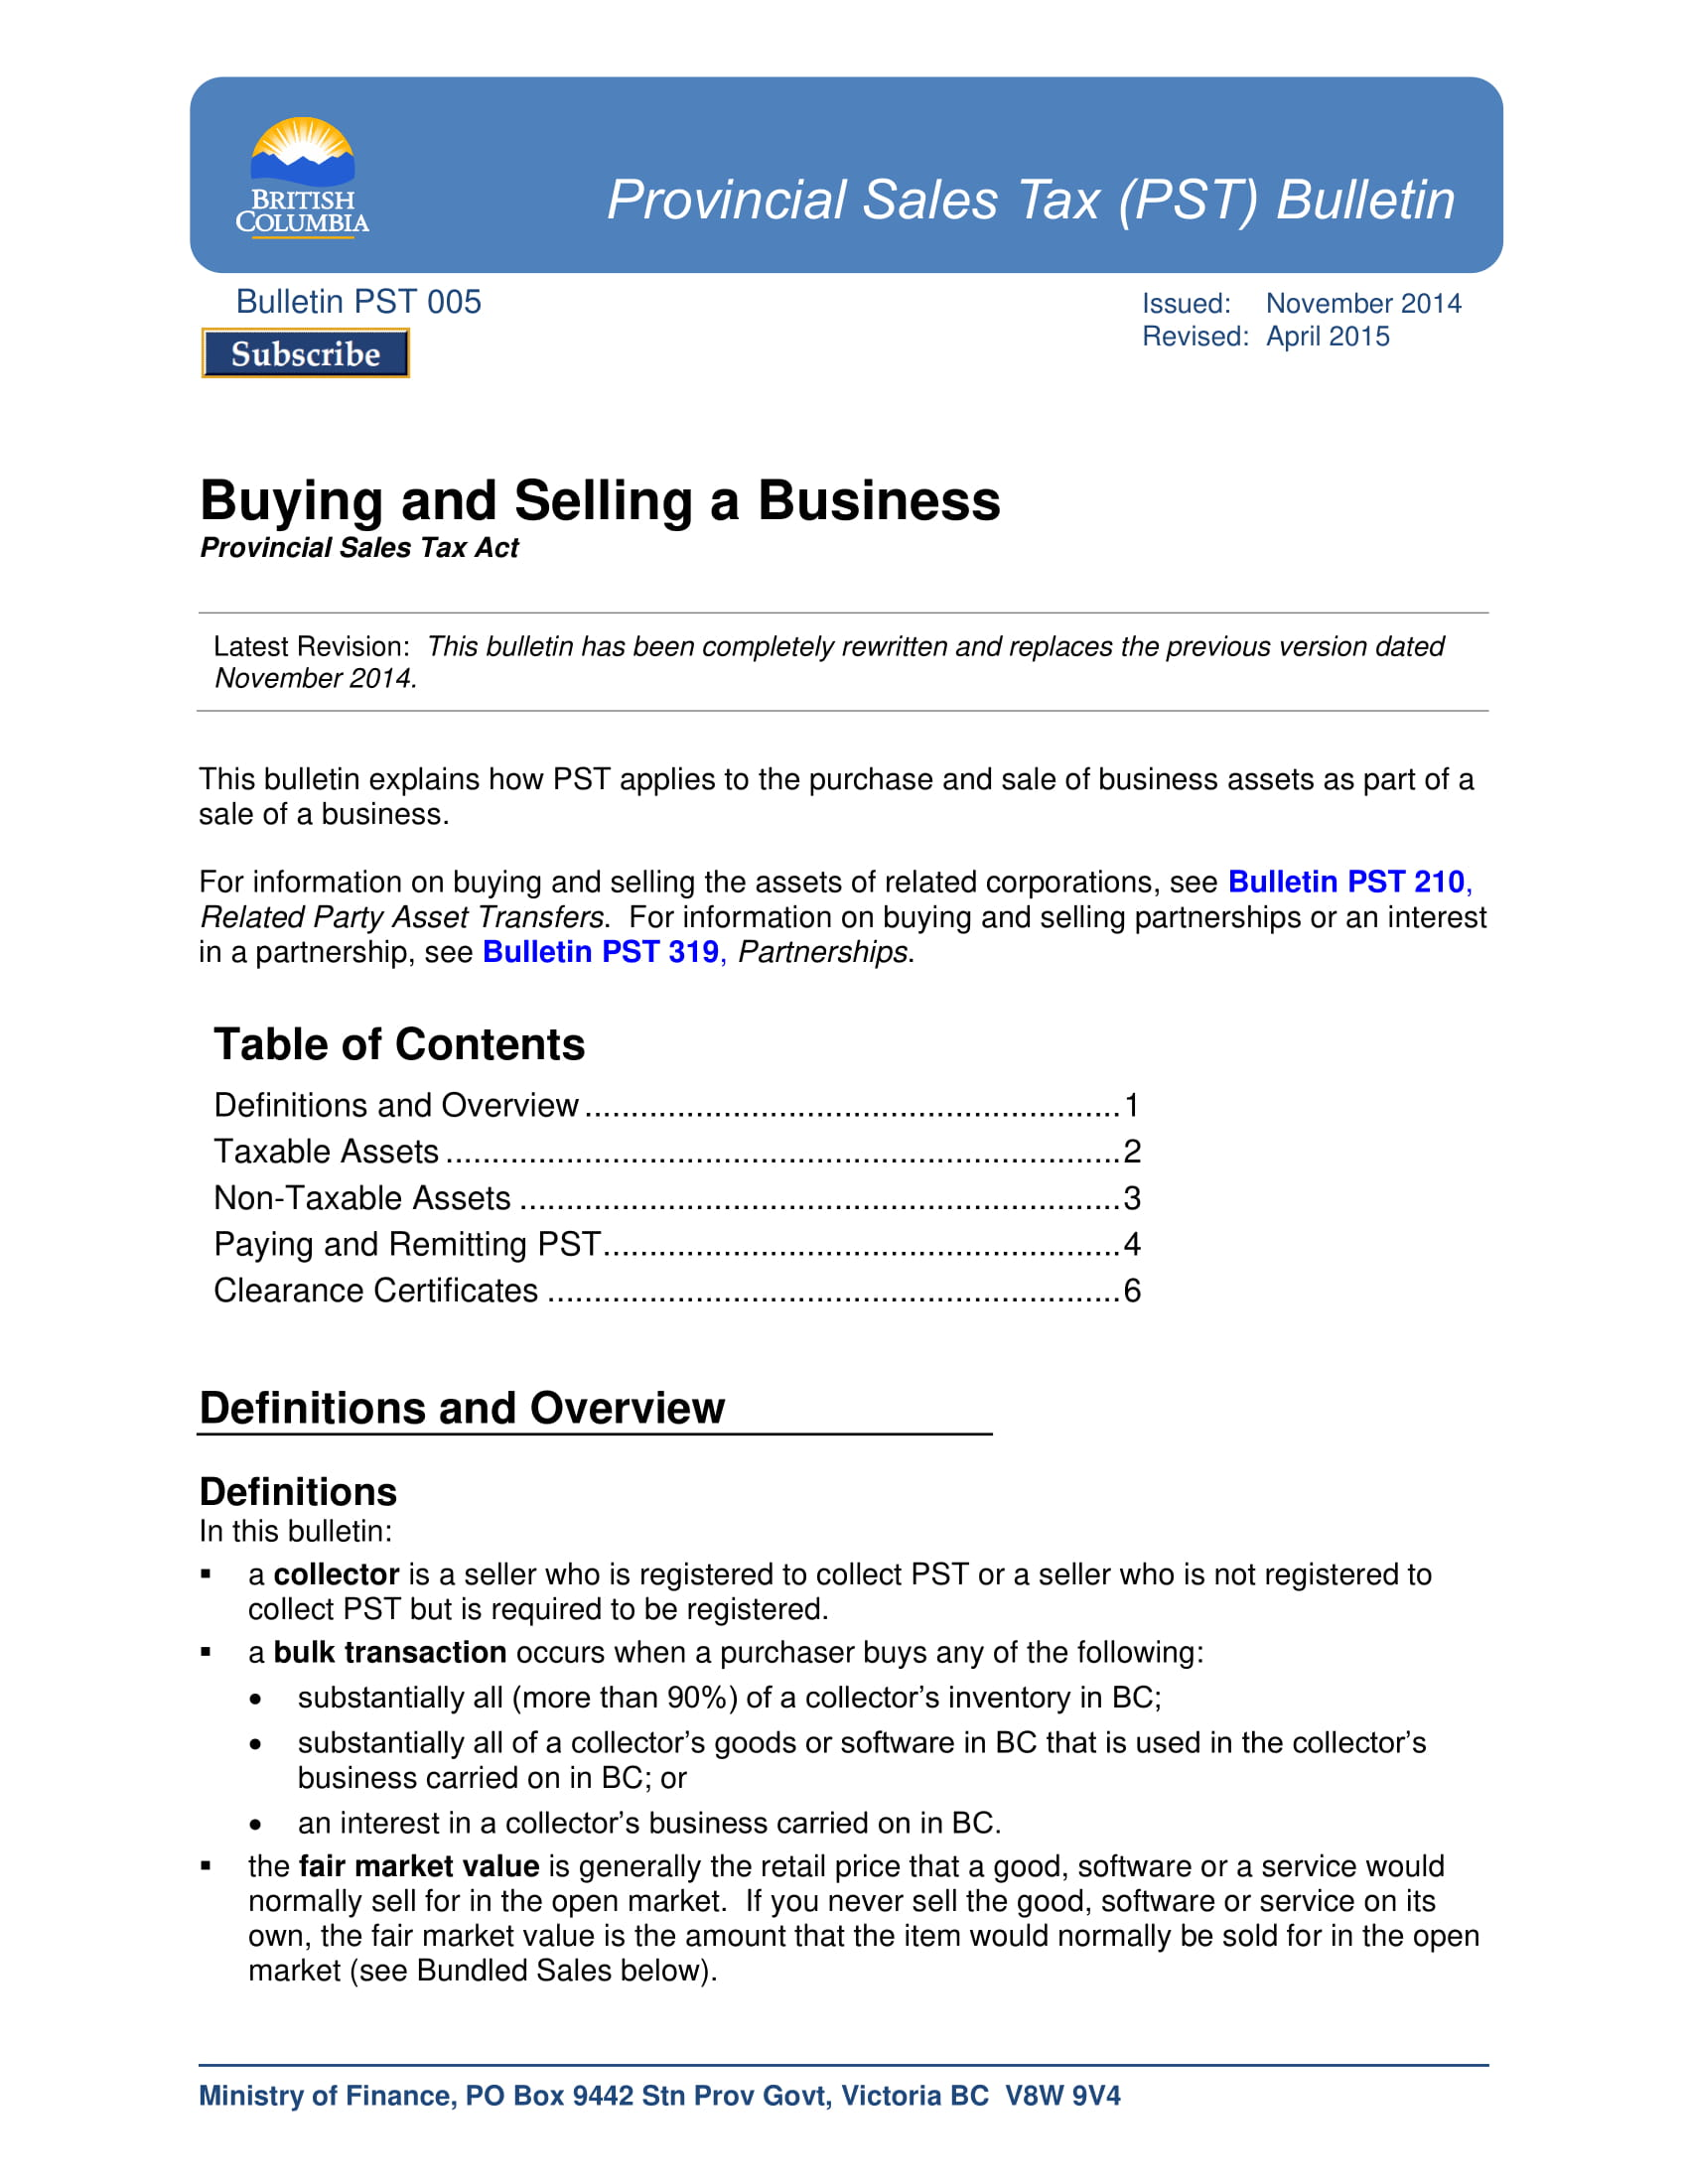 buying and selling a business proposal development and instructions example 1